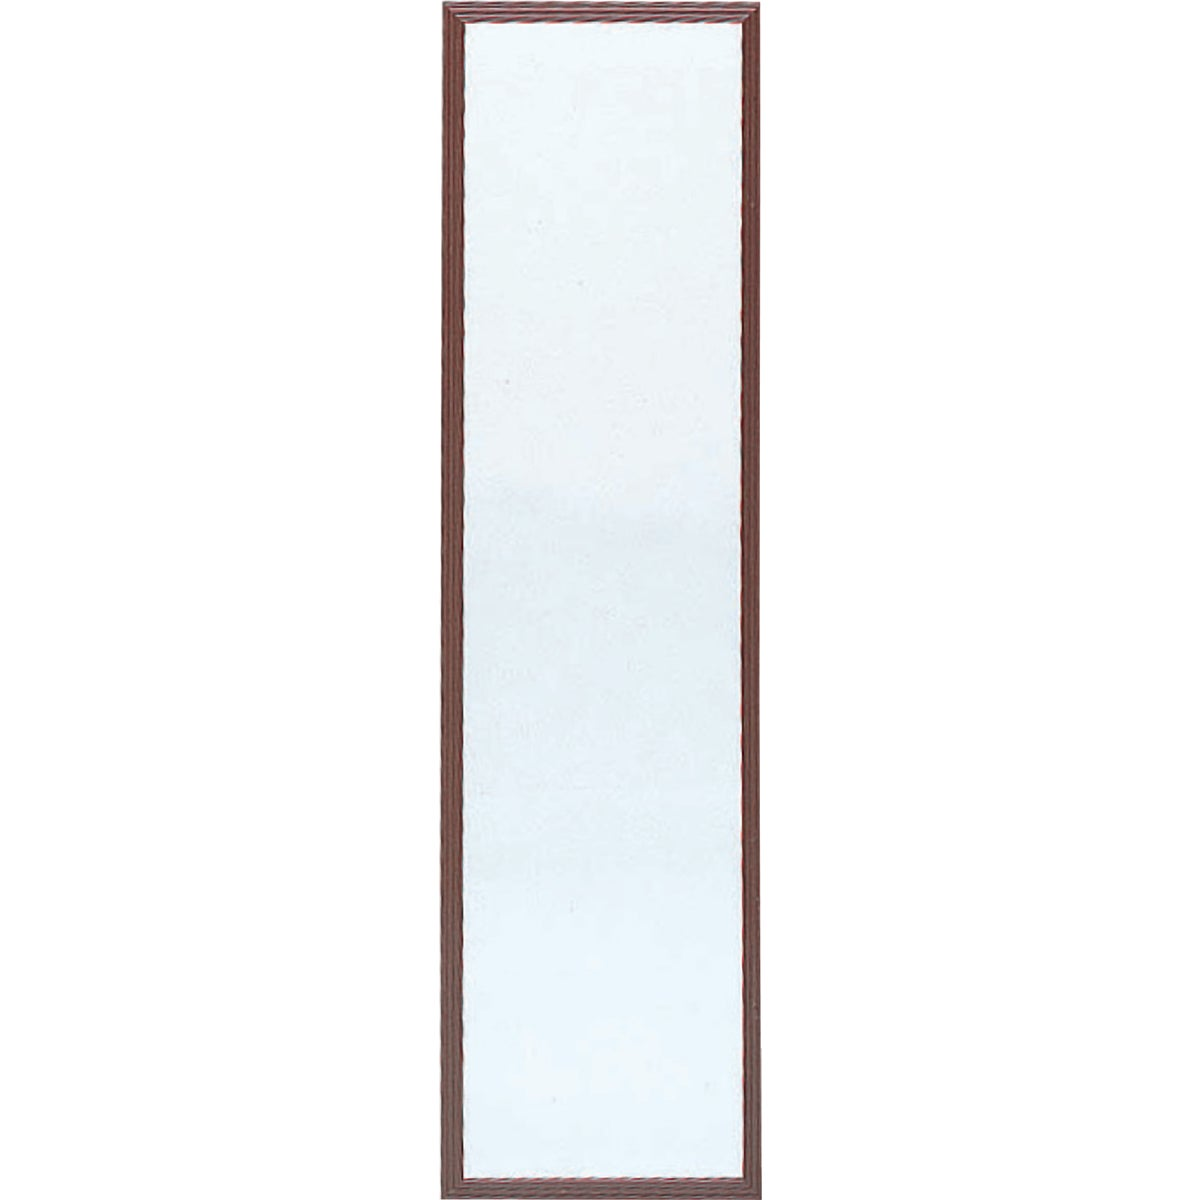 SUAVE WLNT DOOR MIRROR - 20-6130 by Home Decor Innovatns